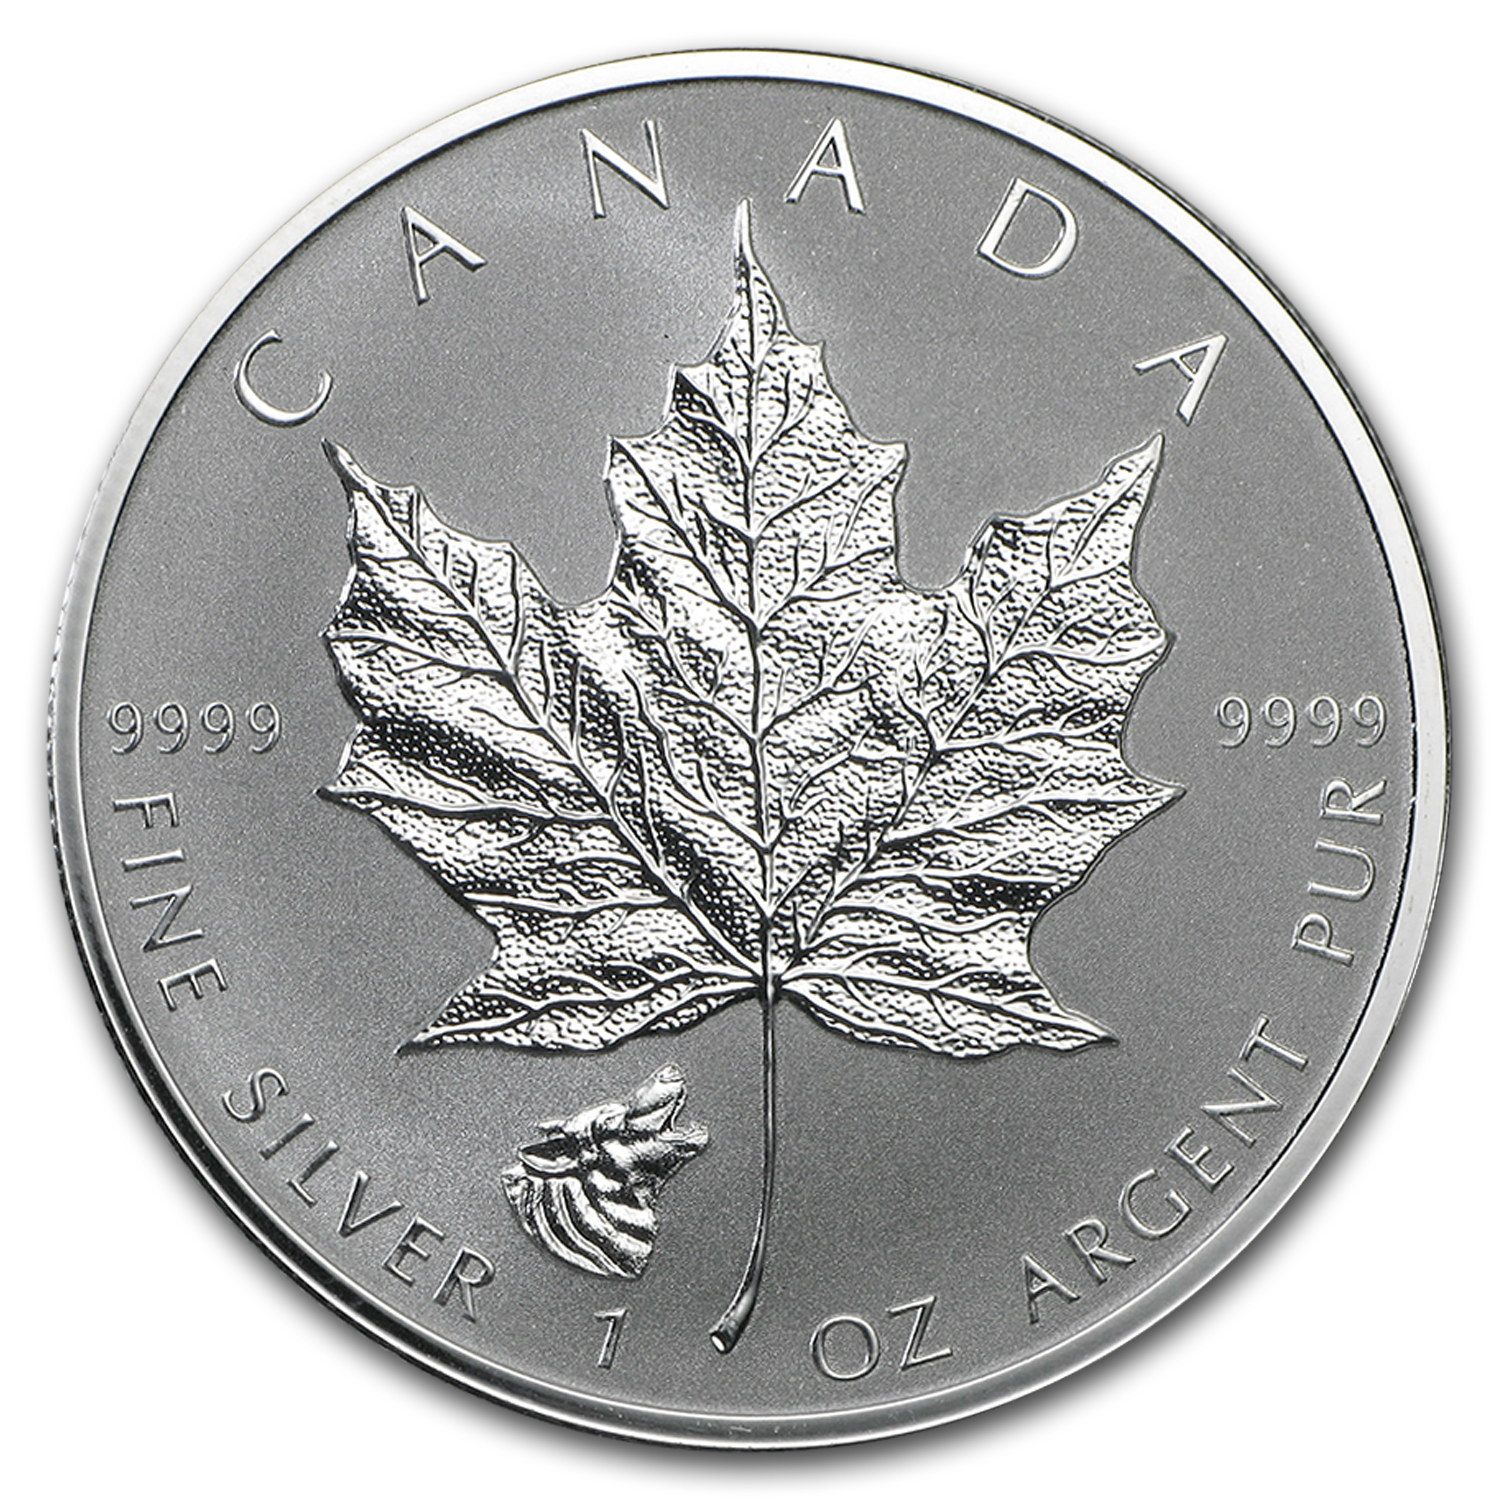 2016 Canada 1 oz Silver Maple Leaf Wolf Privy Reverse Proof